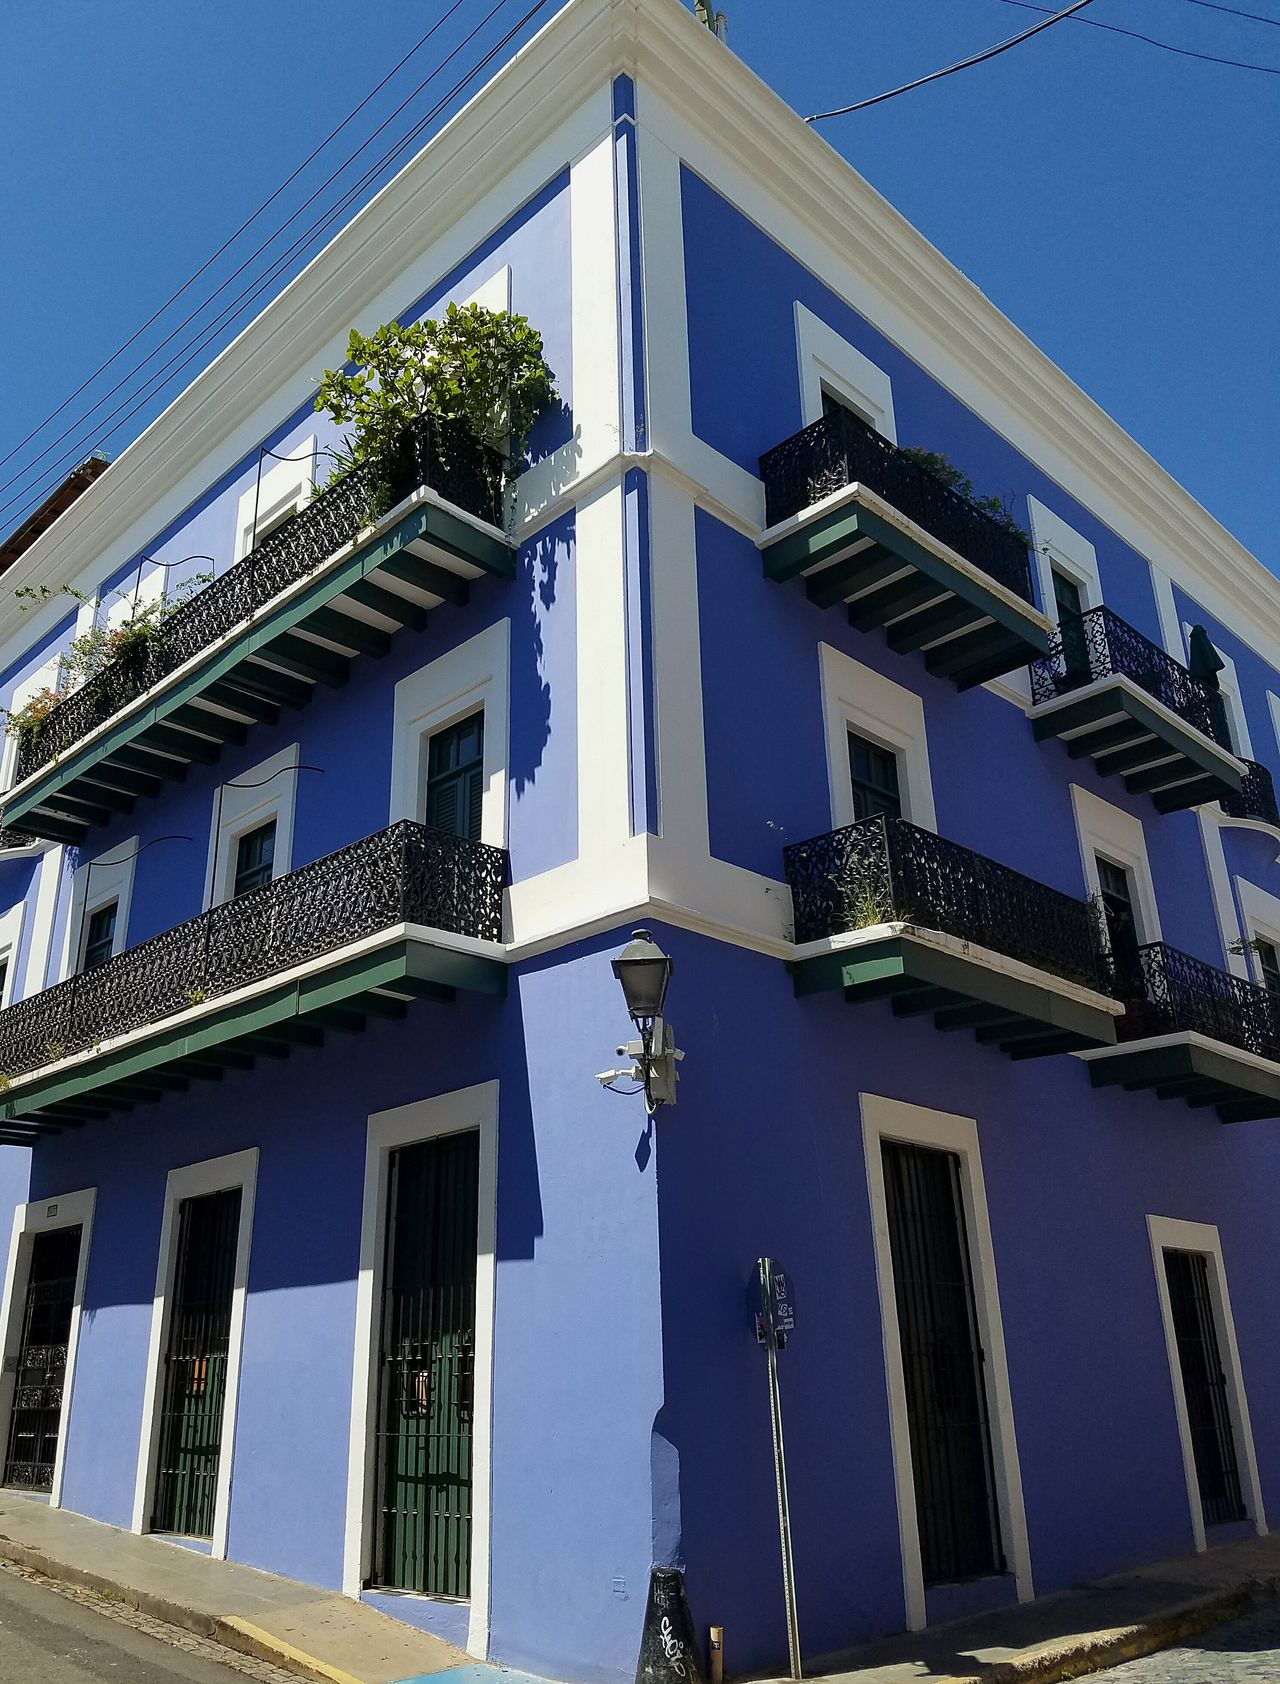 Window Building Exterior Built Structure Colors Of My City San Juan PR Lines And Angles Urban Landscape Light And Shadow Minimalist Architecture Architecture Perspective Minimalism Simple Elegance Color Block Popular City Landscape Urban Exploration Blue